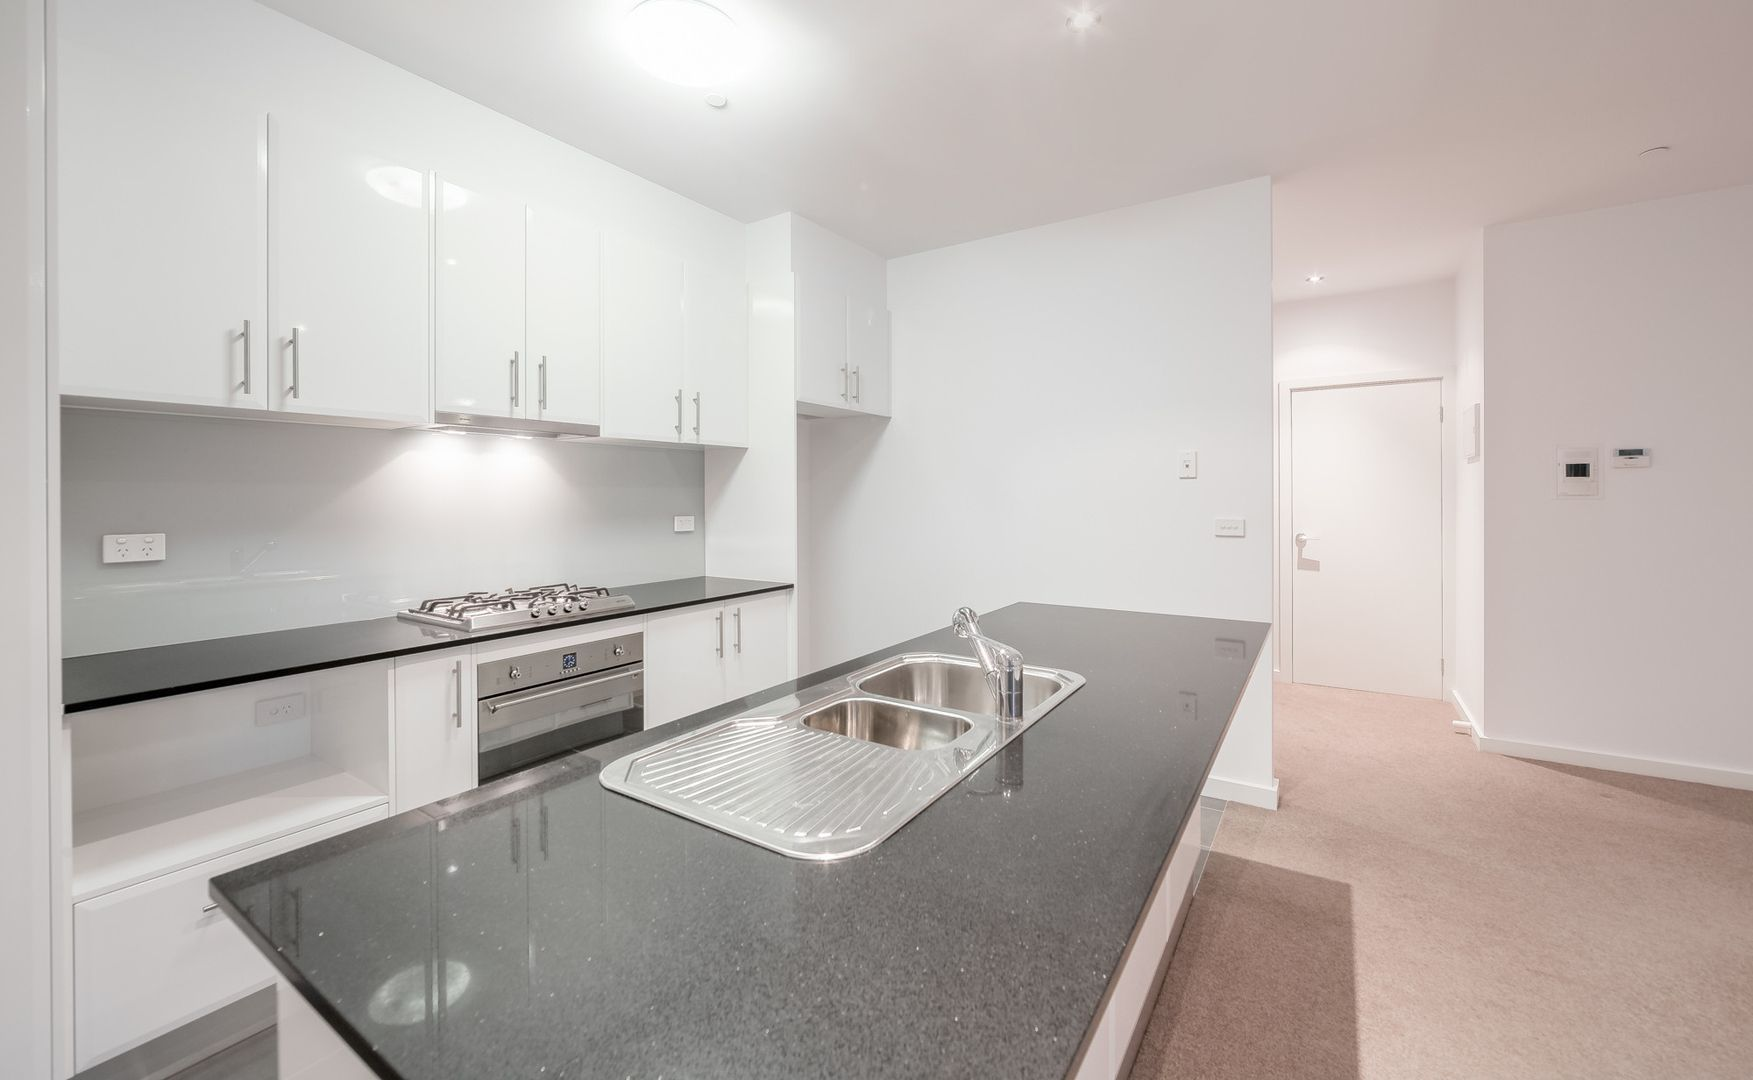 9/107 Whittens Lane, Doncaster VIC 3108, Image 2